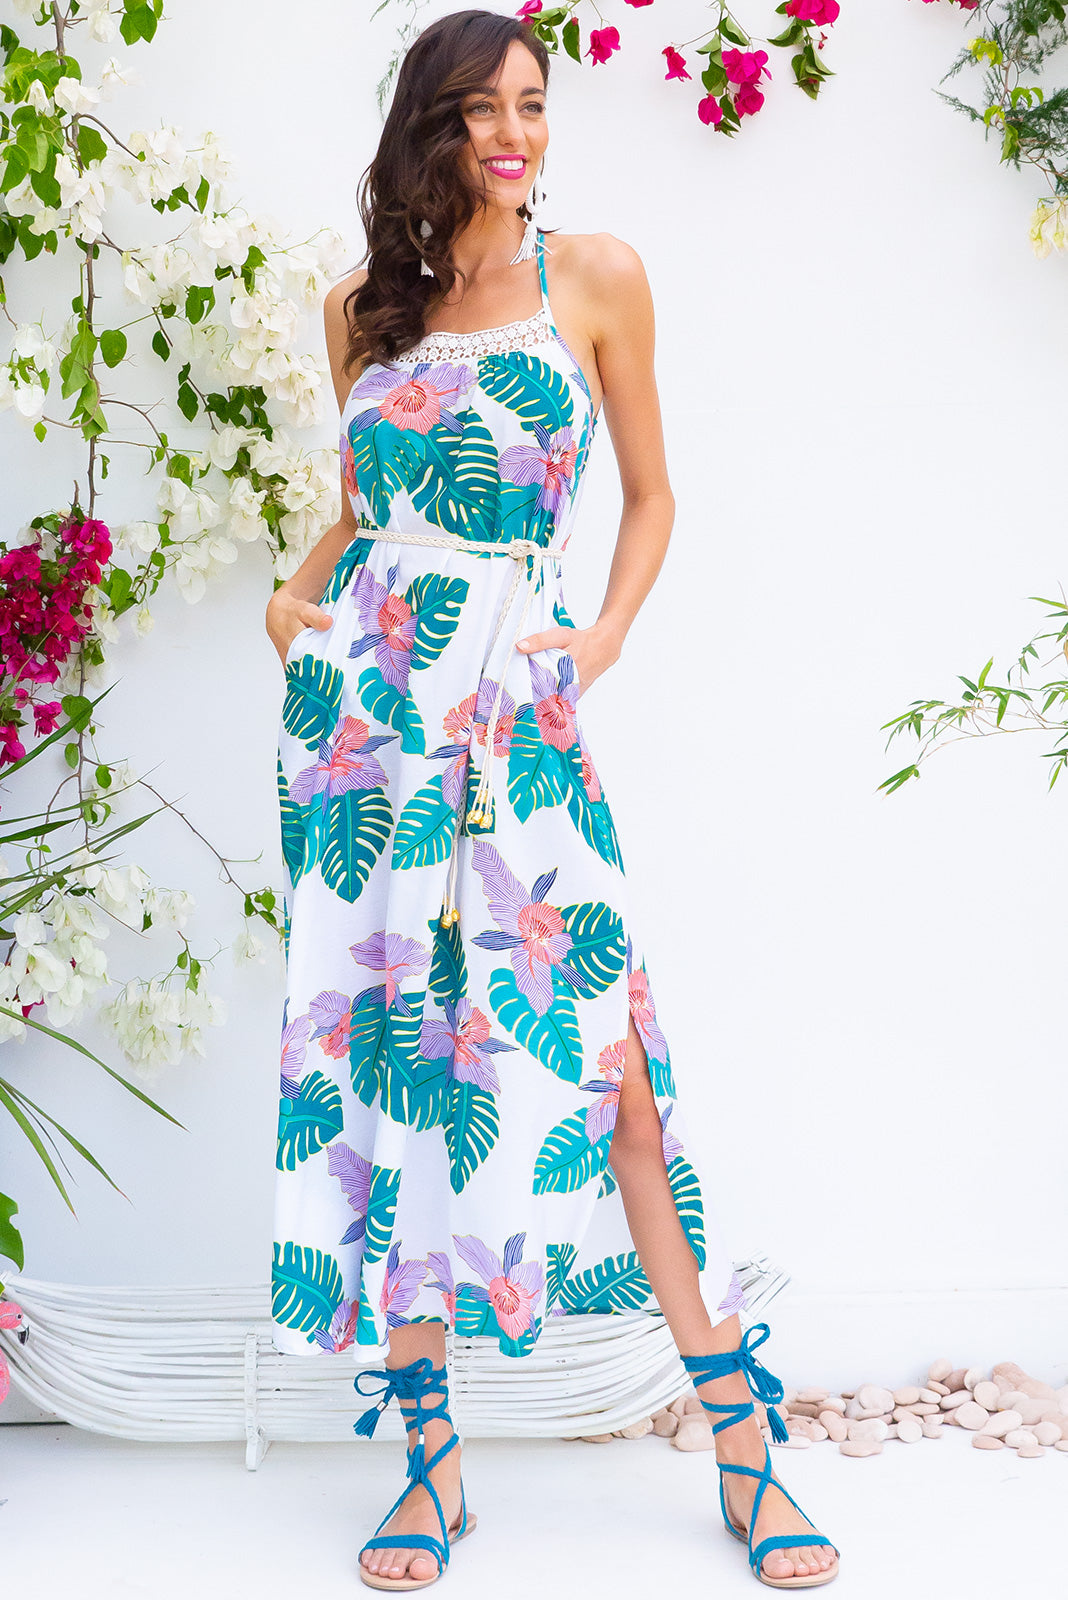 Hibiscus Maxi Beach Dress in a bright tropical leaf print on a rayon nylon blend woven fabric comes with adjustable straps and a plaited belt